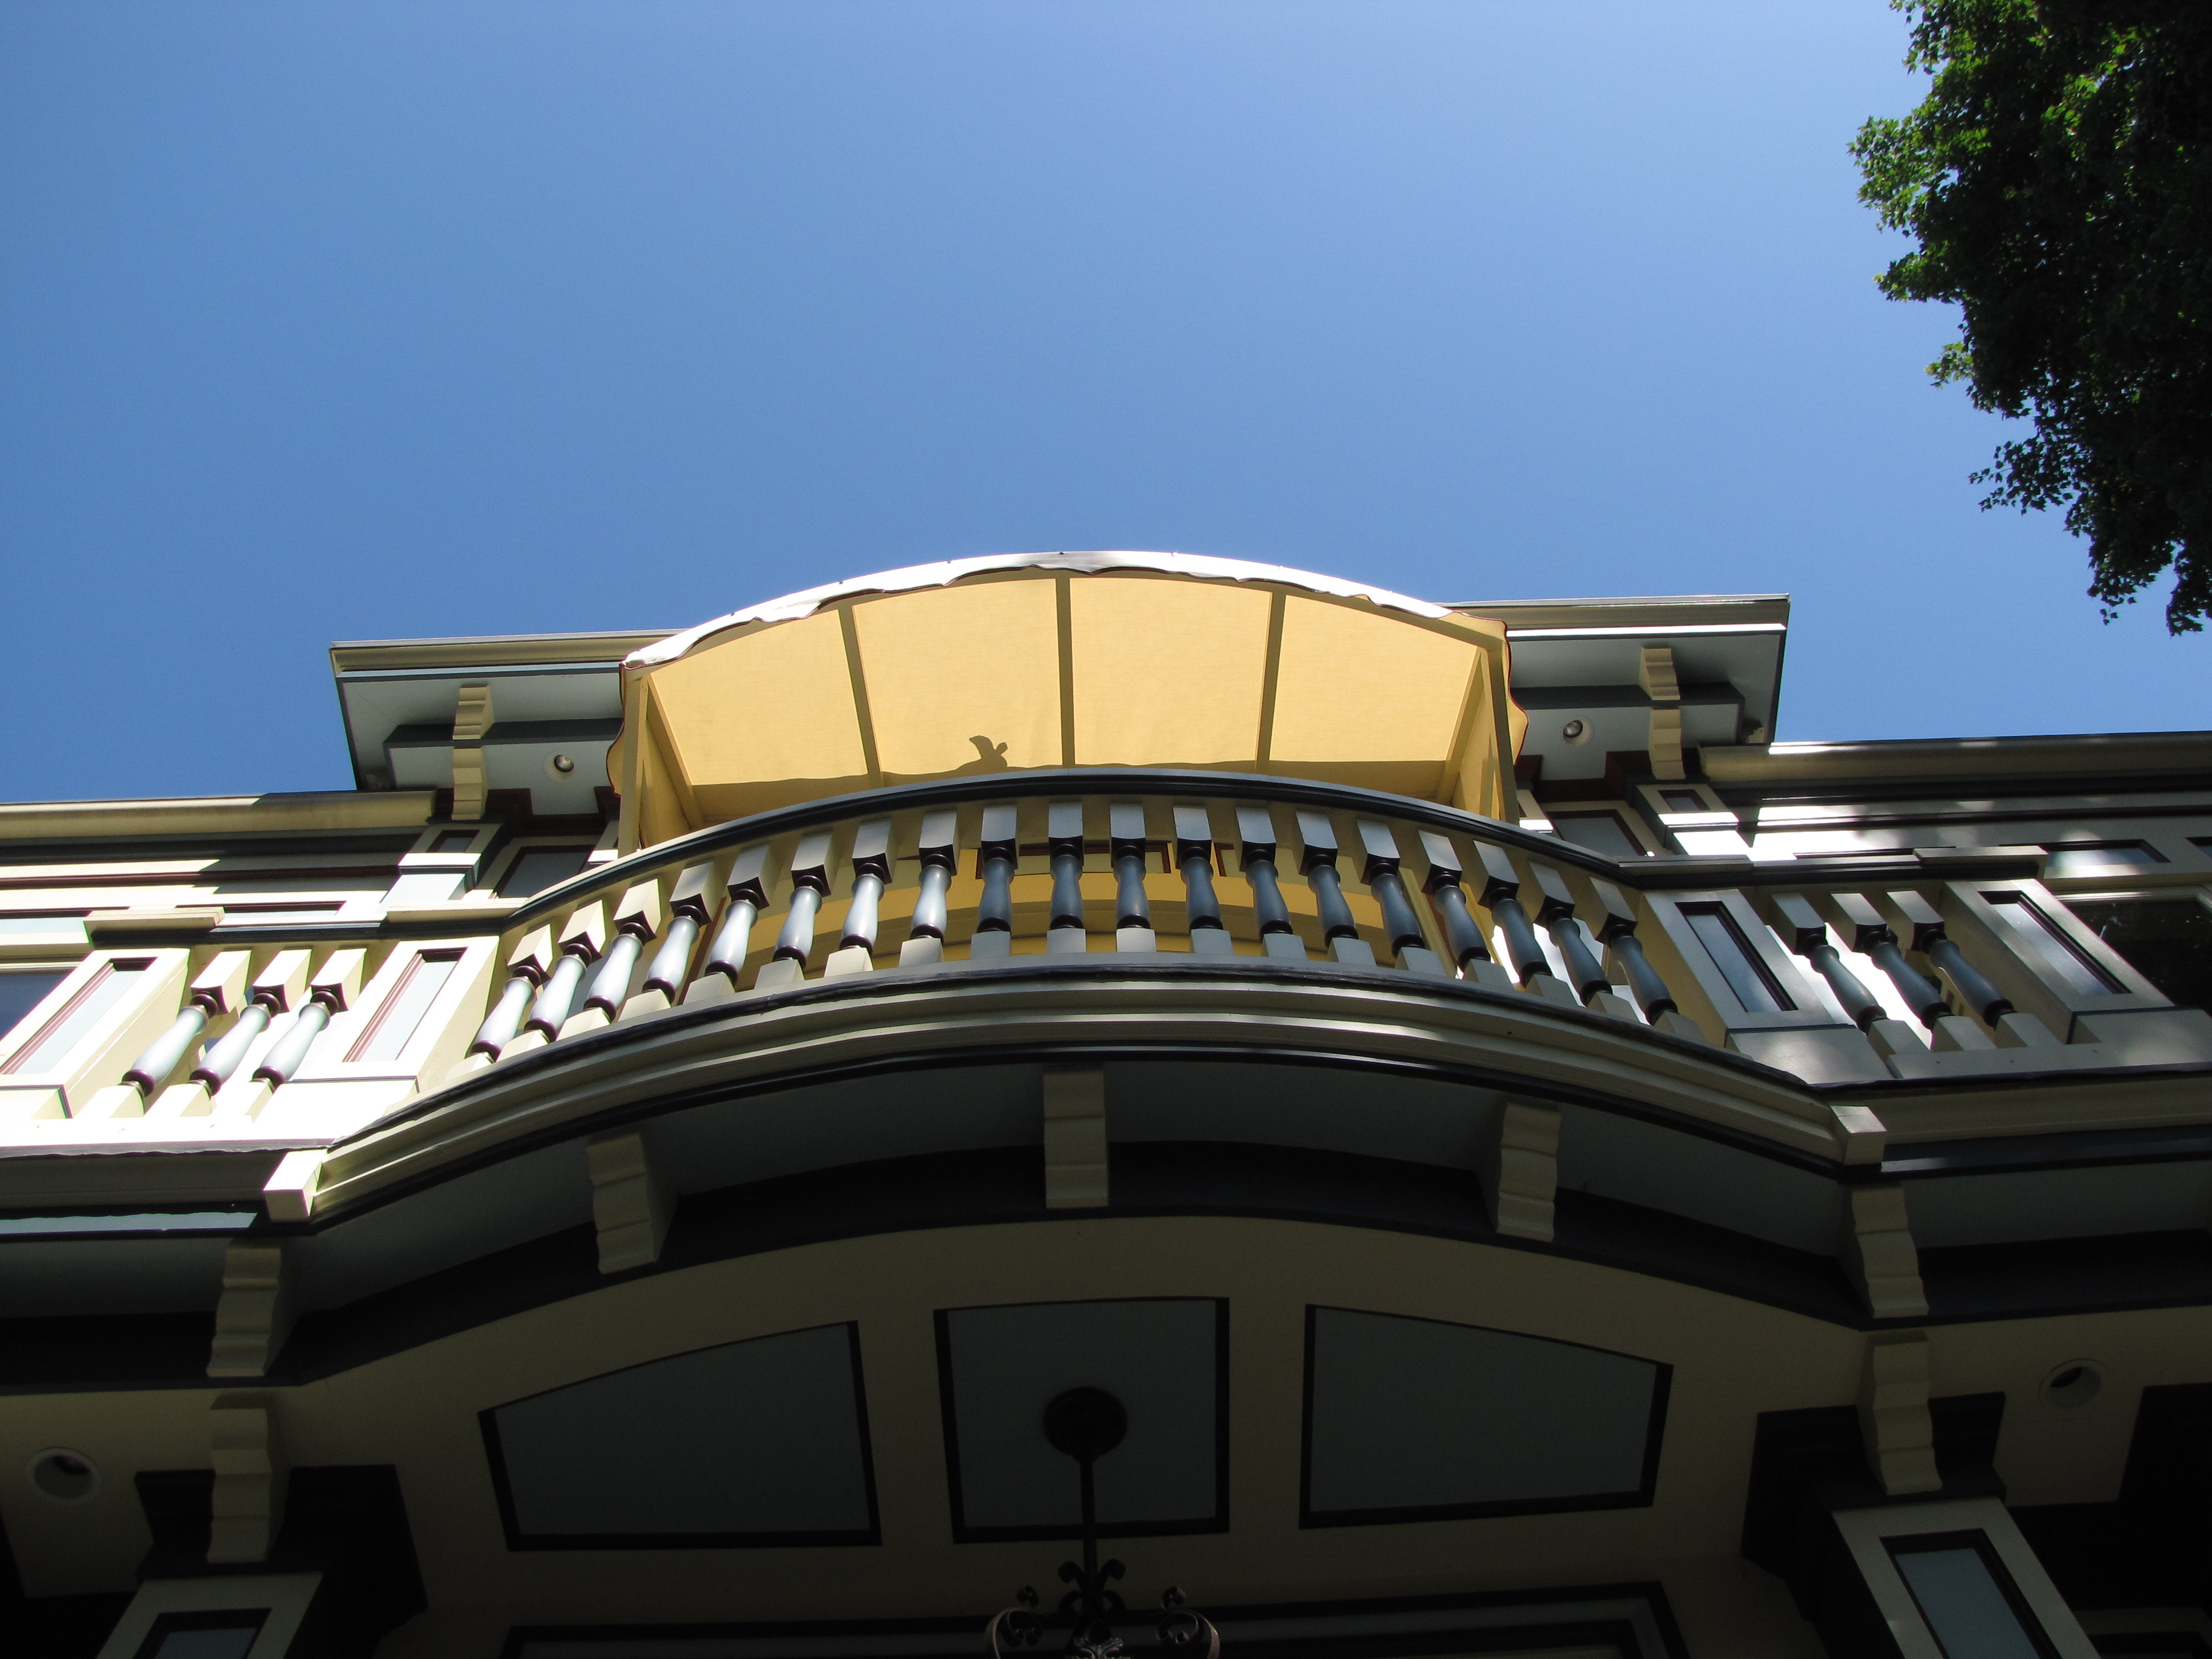 This wood framed awning covers an elegant balcony space.